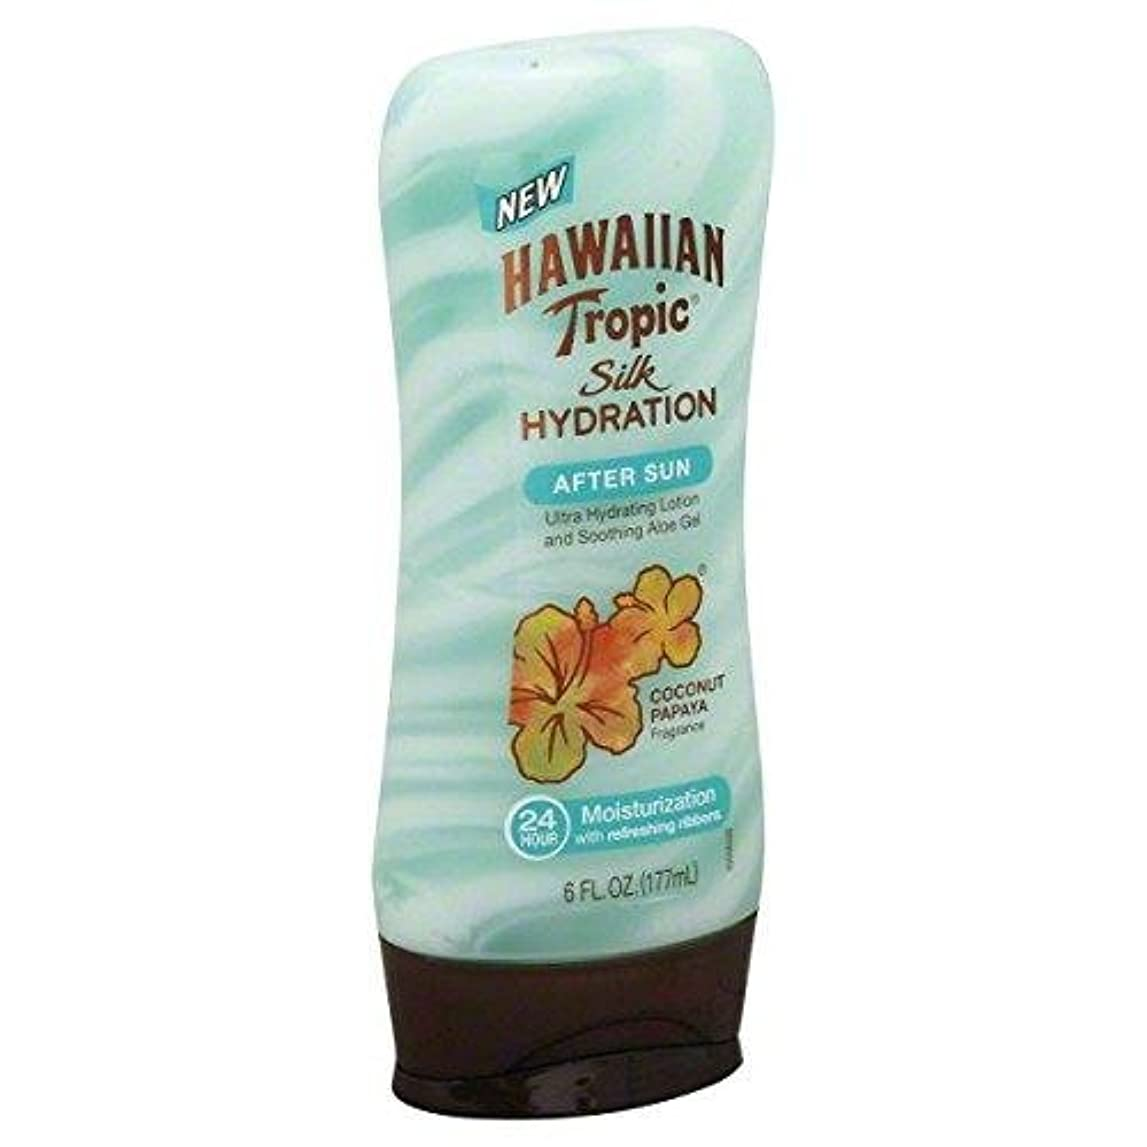 被害者保険無限海外直送品【日焼け後のクールダウン&保湿】Hawaiian Tropic Silk Hydration After Sun Ultra Hydrating Lotion & Soothing Aloe Gel, Coconut Papaya - 6 fl oz (177 ml)